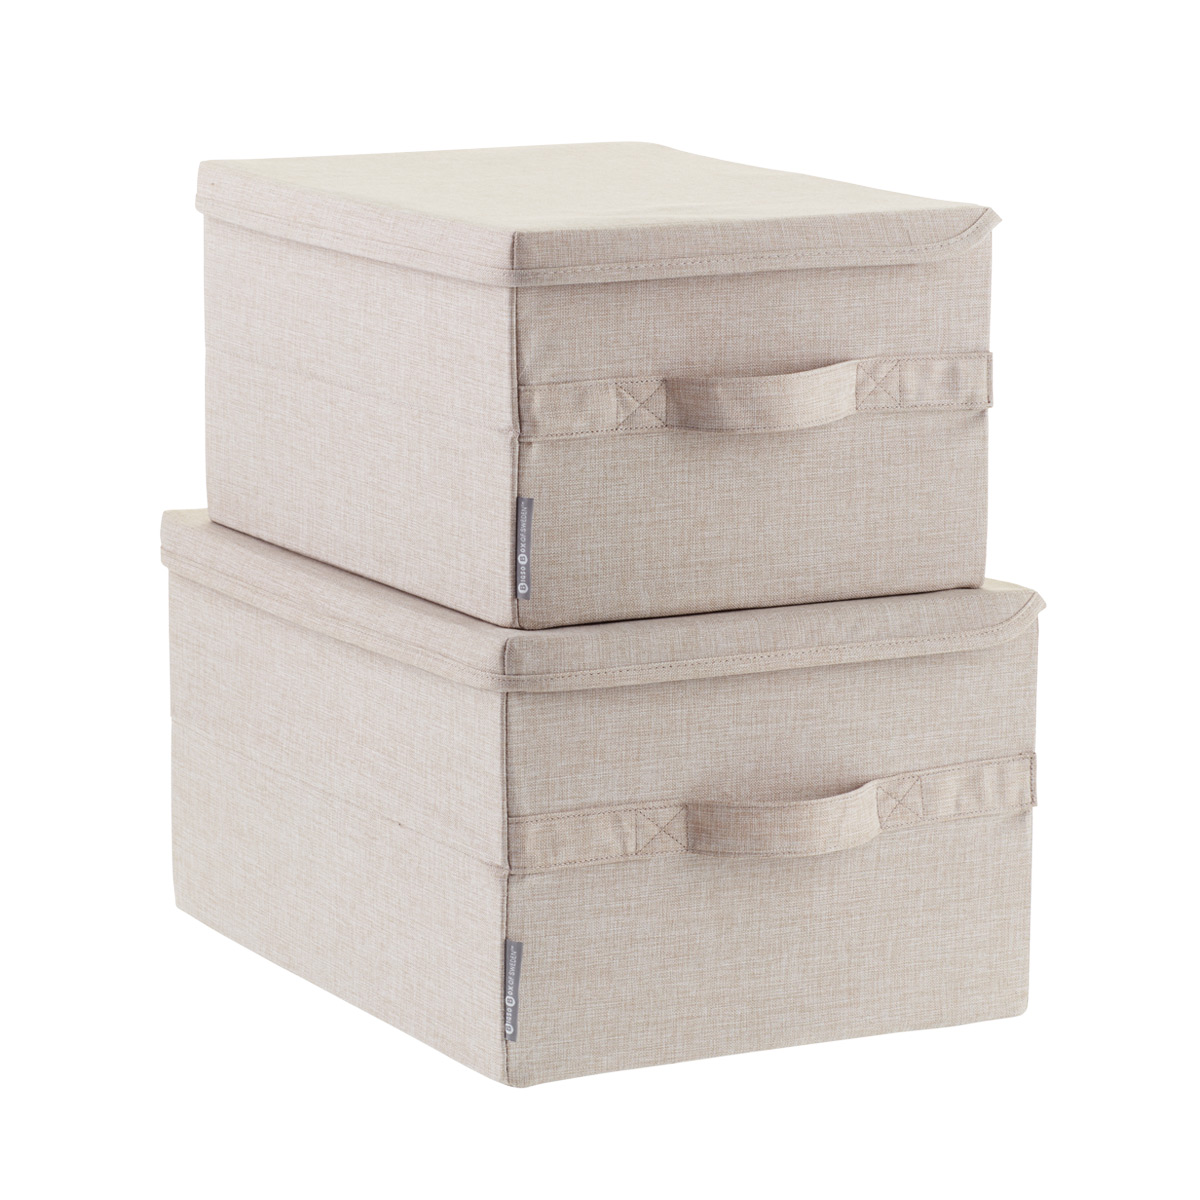 Captivating Bigso Flax Soft Storage Boxes With Handles